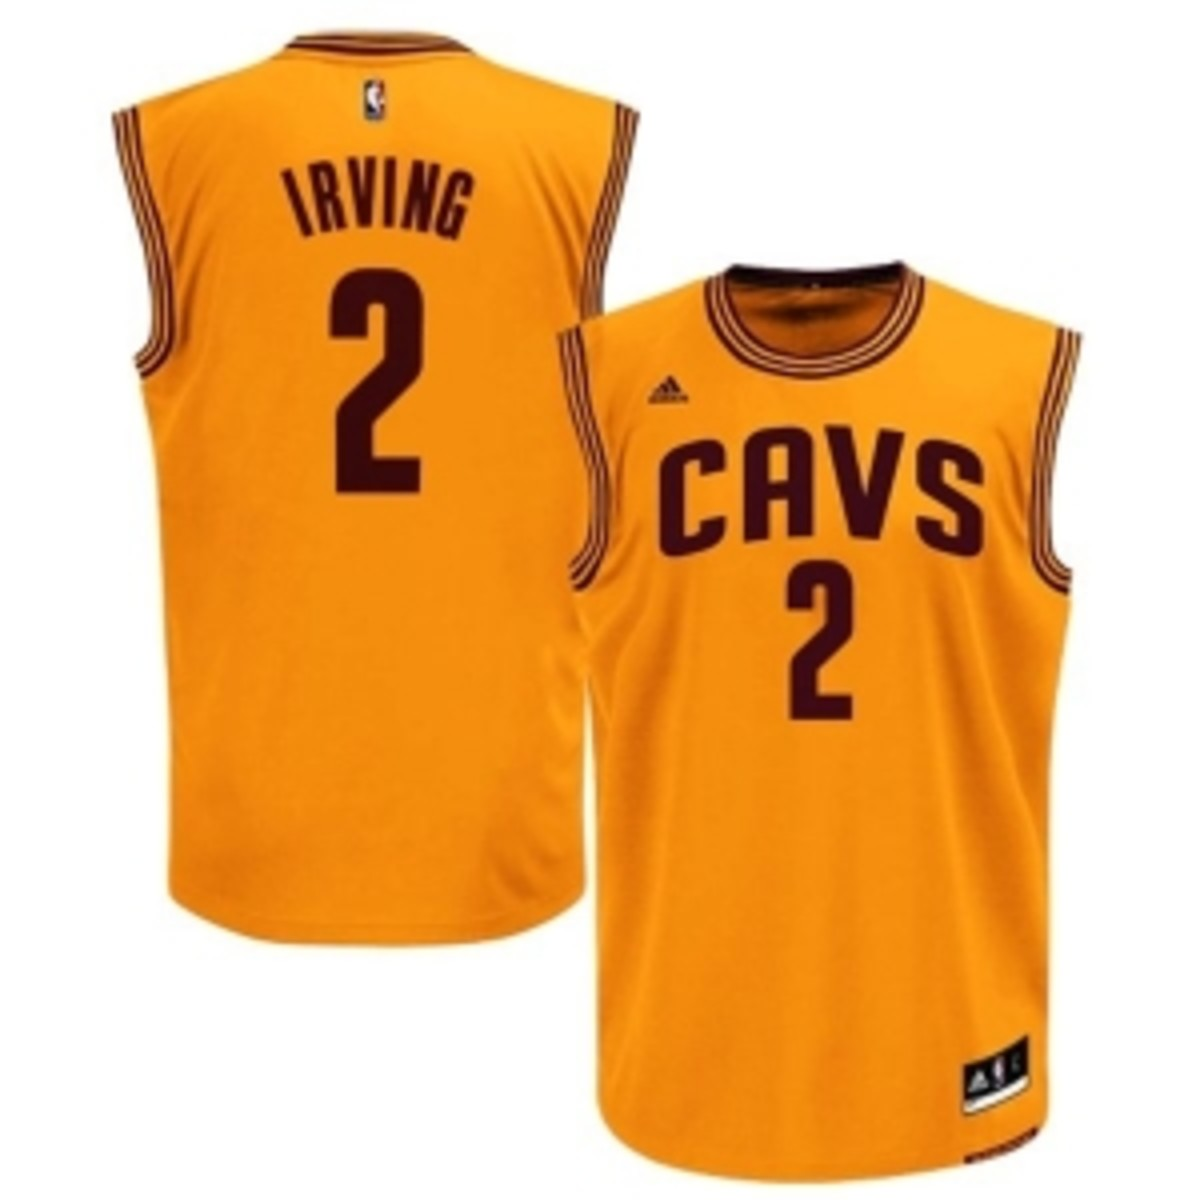 kyrie irving jersey